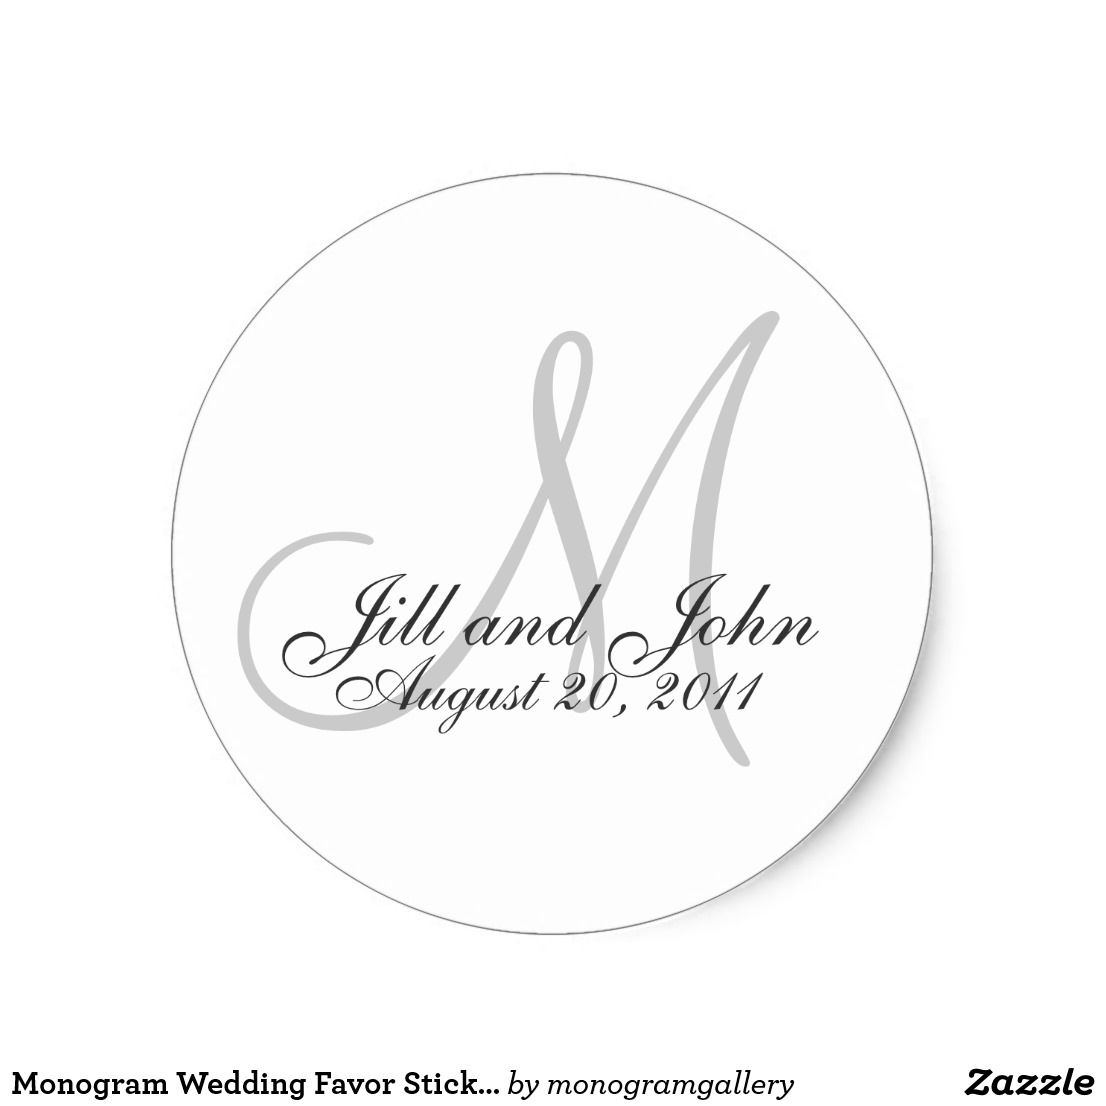 Monogram Wedding Favor Sticker | Favors, Wedding and Weddings